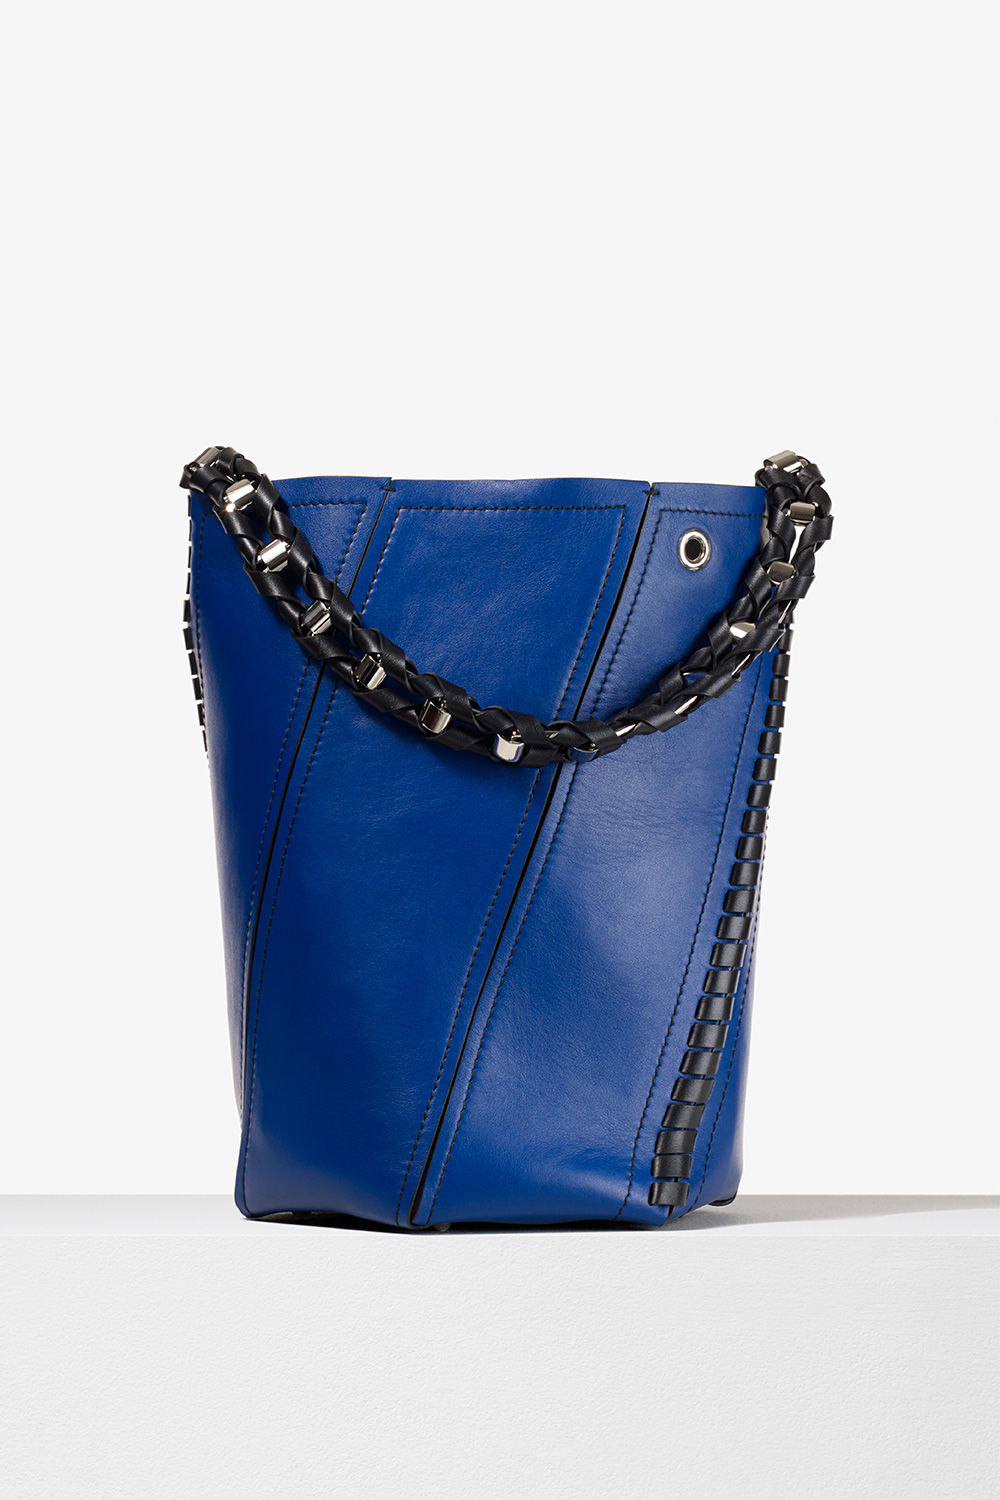 proenza schouler spring 2017 lapis smooth leather medium hex bucket bag